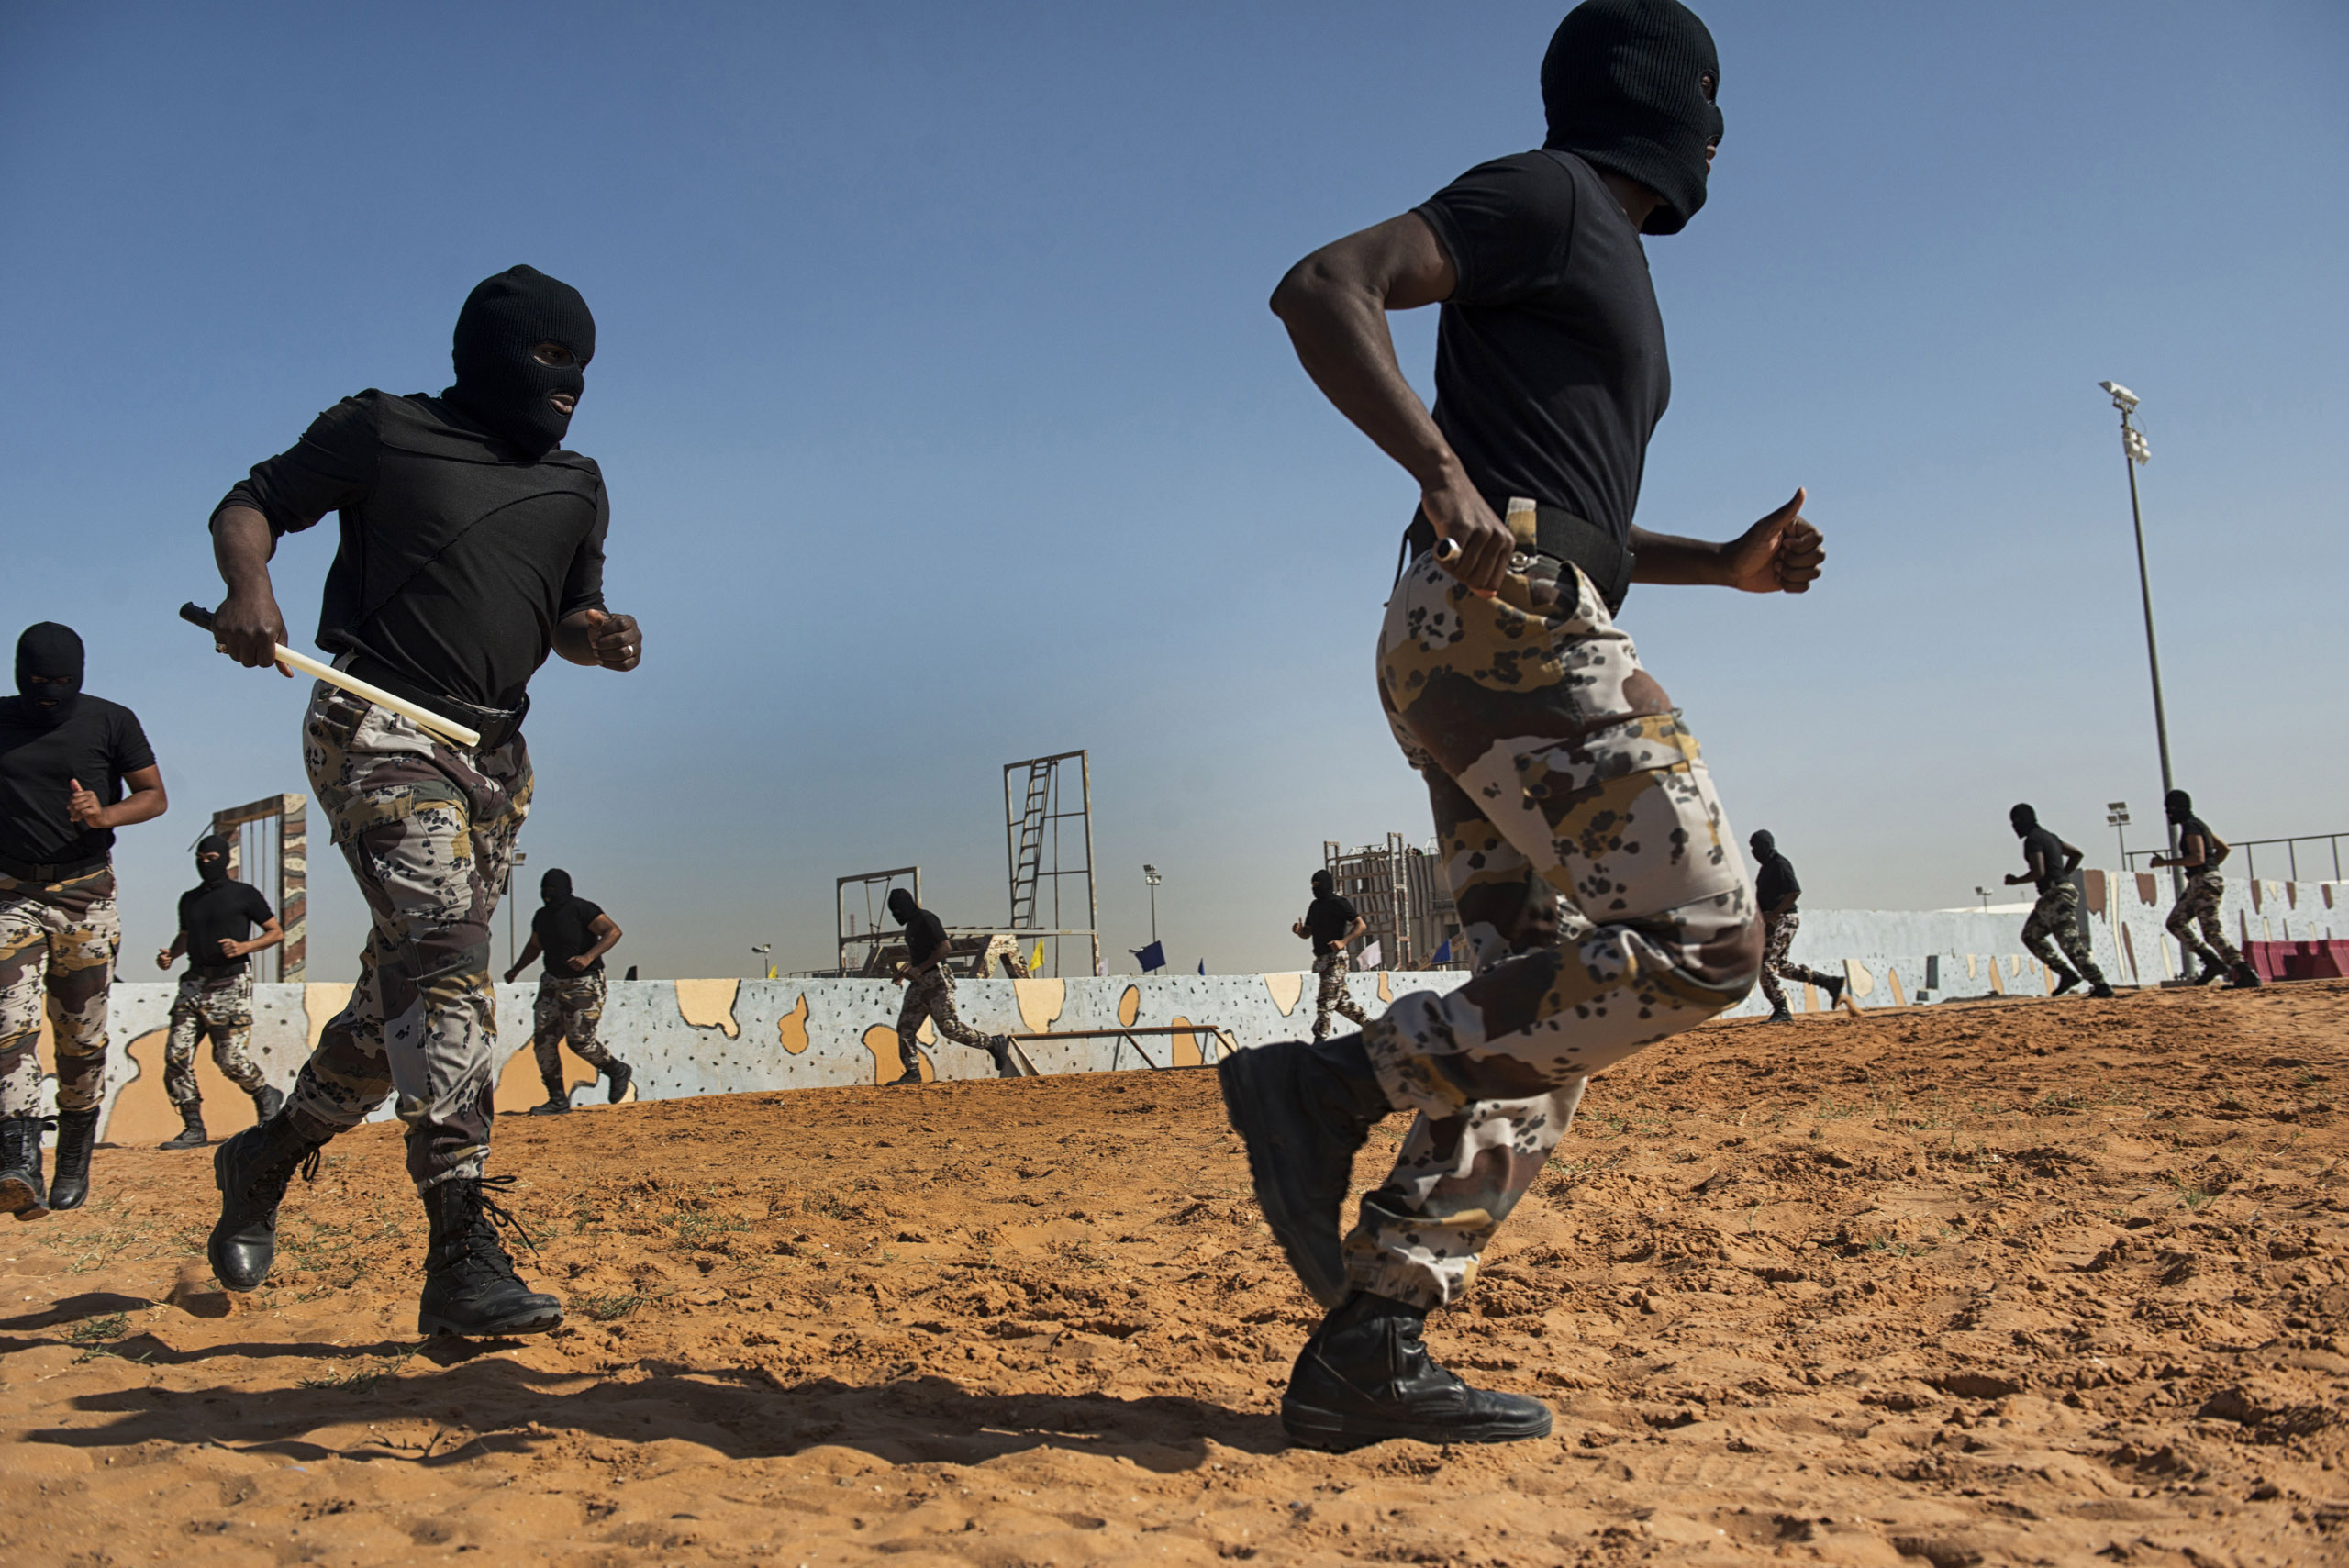 Troops with the Saudi Special Security Forces warm up and perform basic exercises to increase strength and agility at the Counter-Terrorism Training School camp, March 5, 2013.